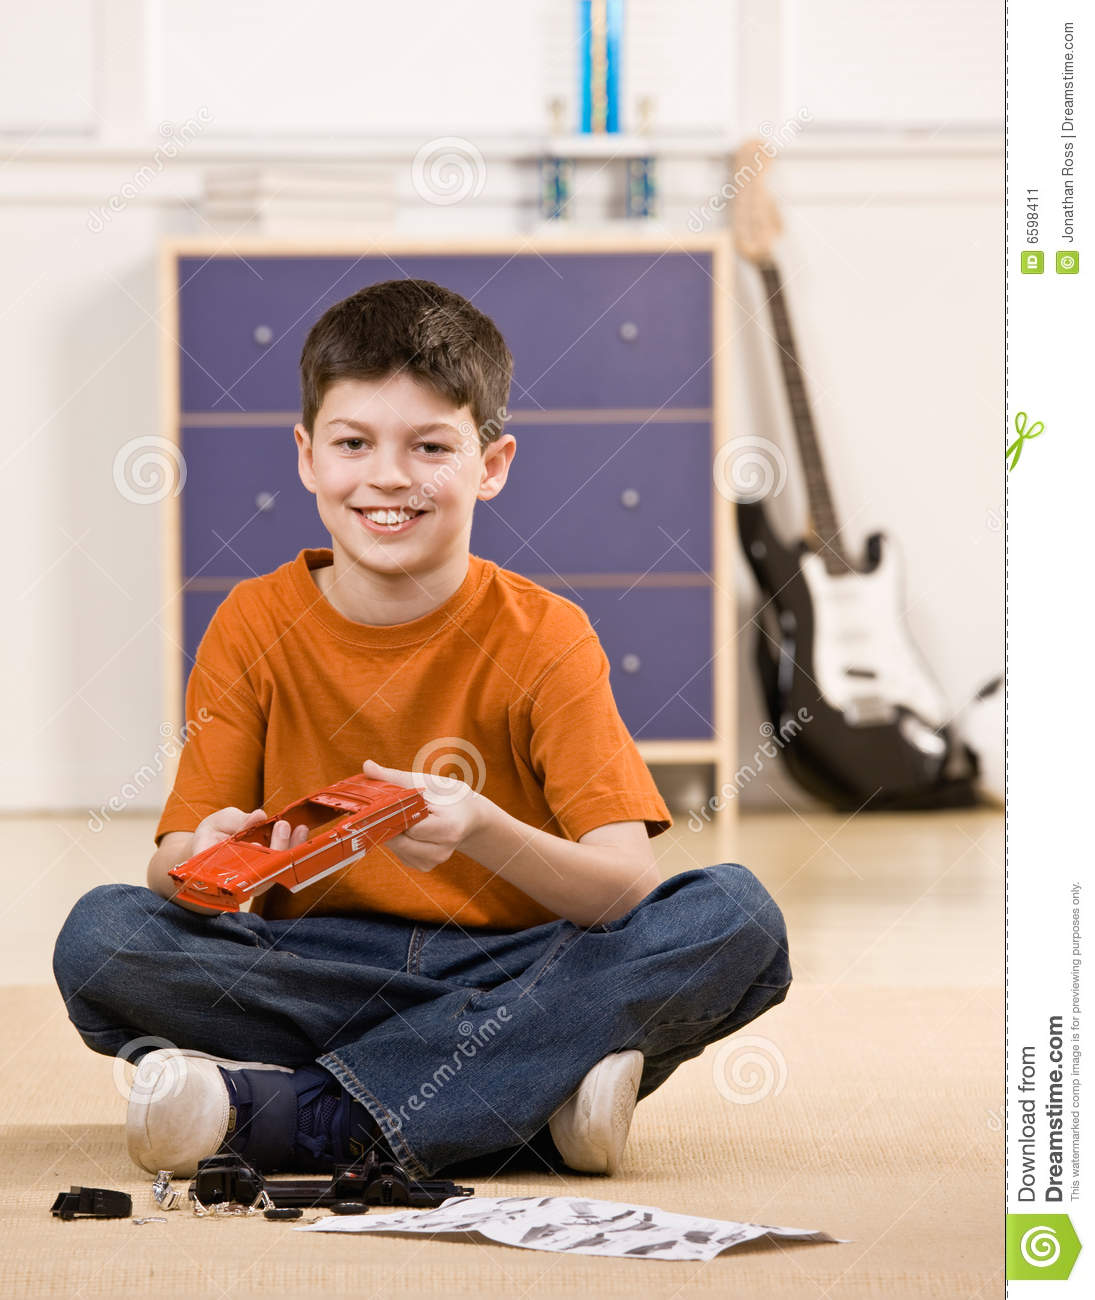 boy putting together parts of small model car stock image image of rh dreamstime com